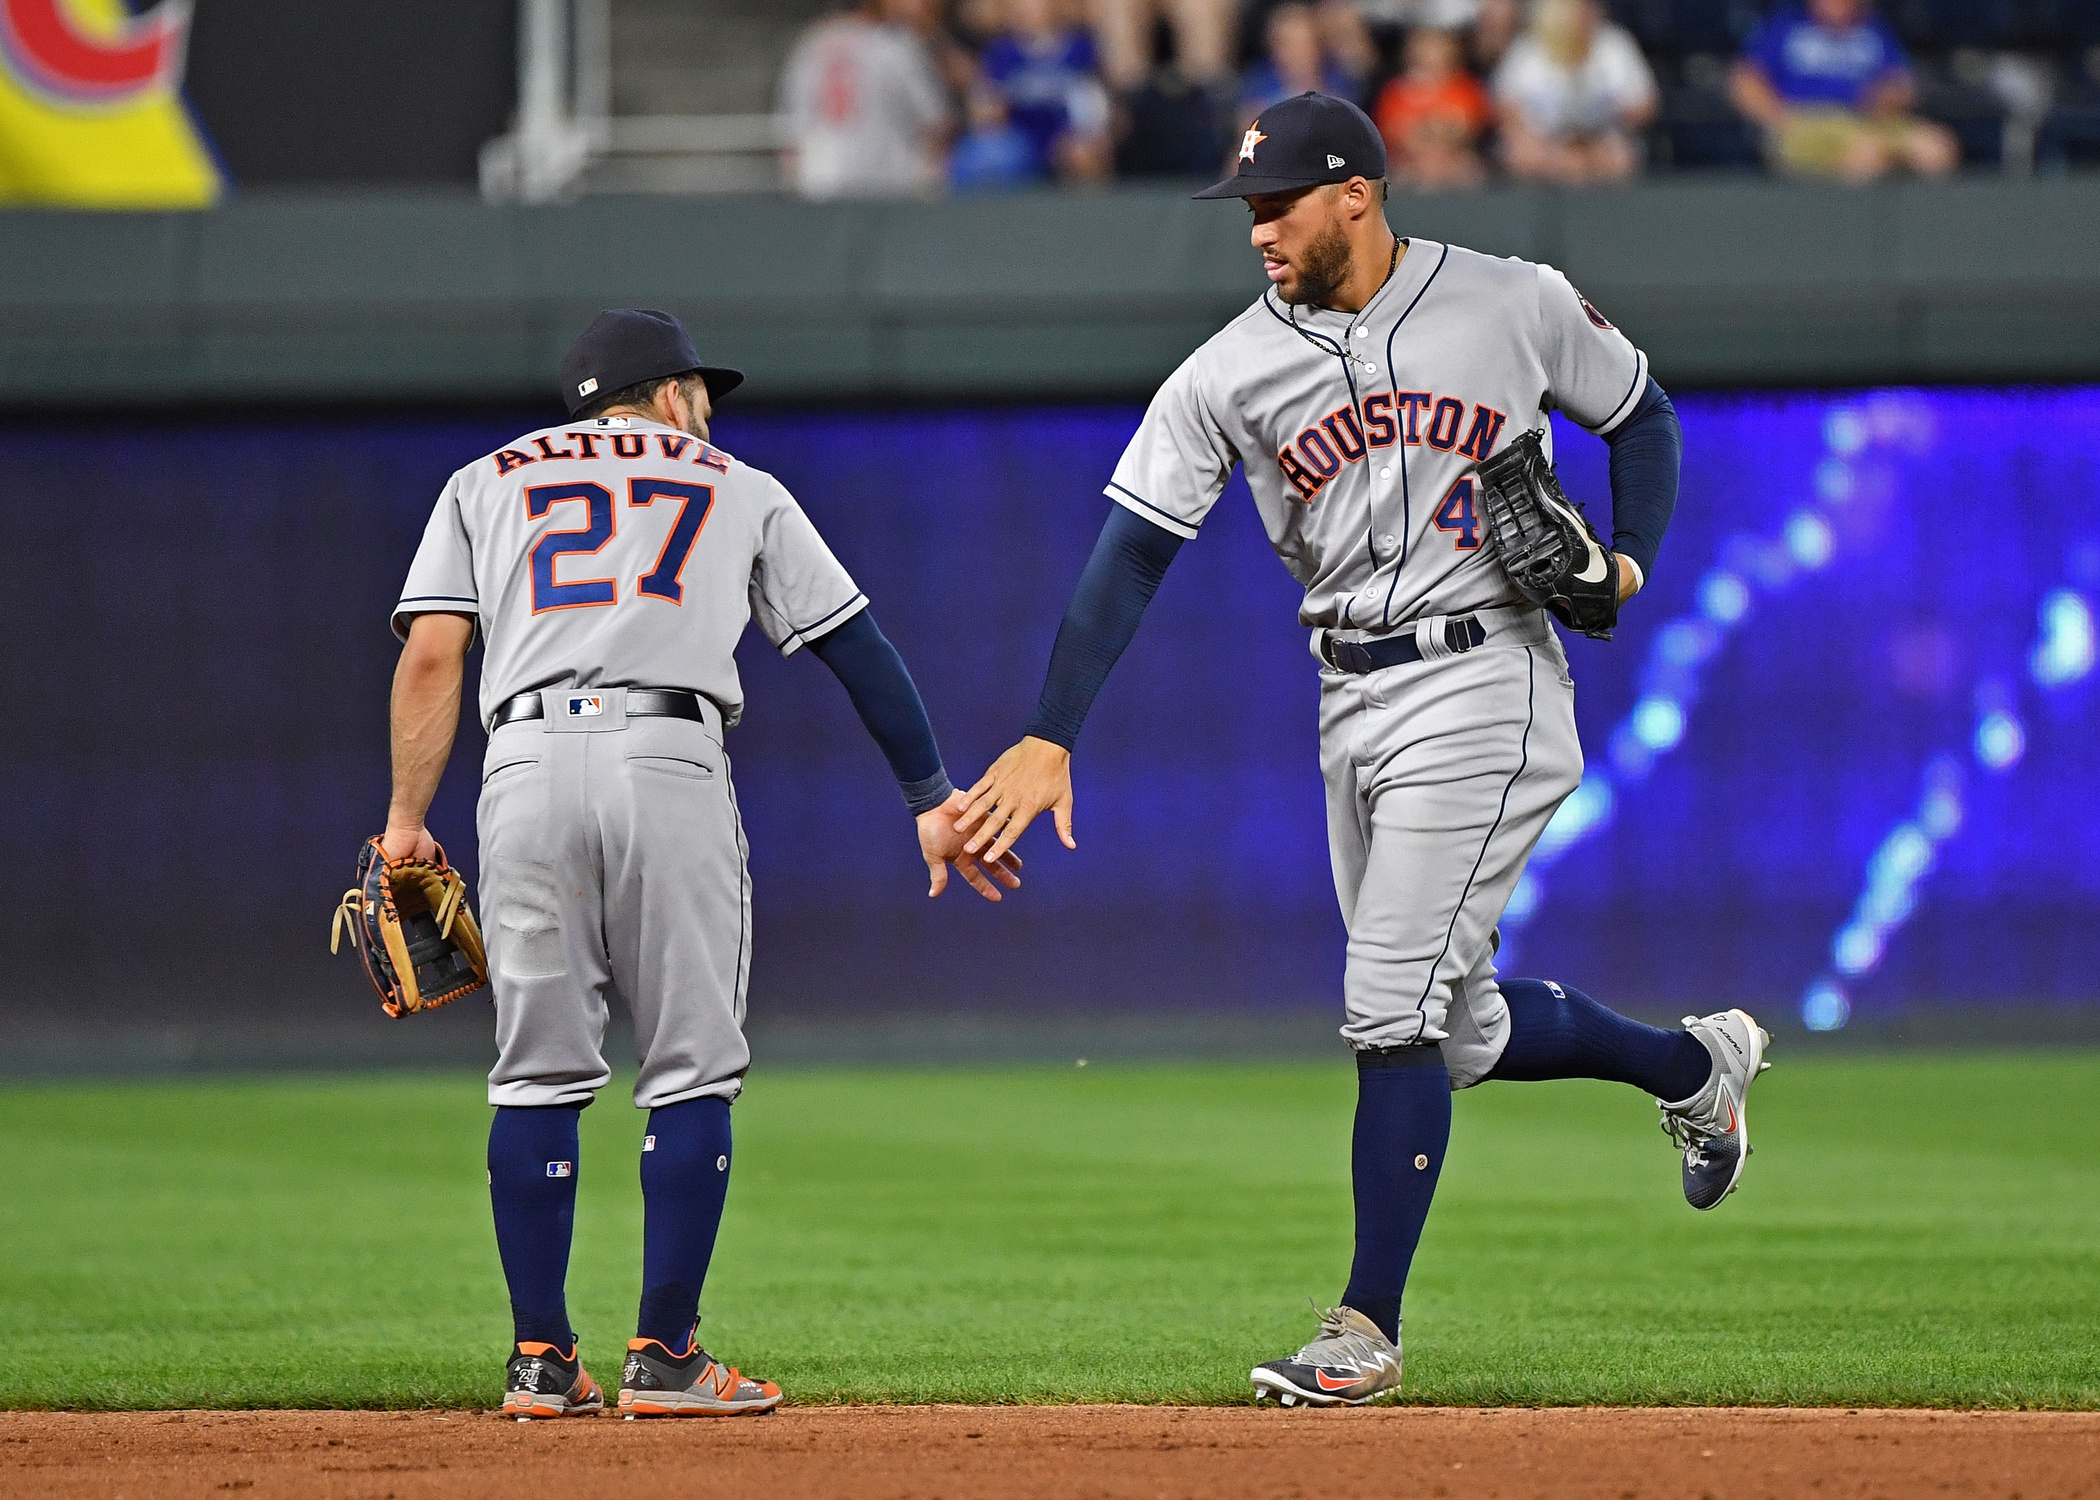 Jun 15, 2018; Kansas City, MO, USA; Houston Astros center fielder George Springer (4) celebrates with Jose Altuve (27) after beating the Kansas City Royals at Kauffman Stadium. Mandatory Credit: Peter G. Aiken/USA TODAY Sports